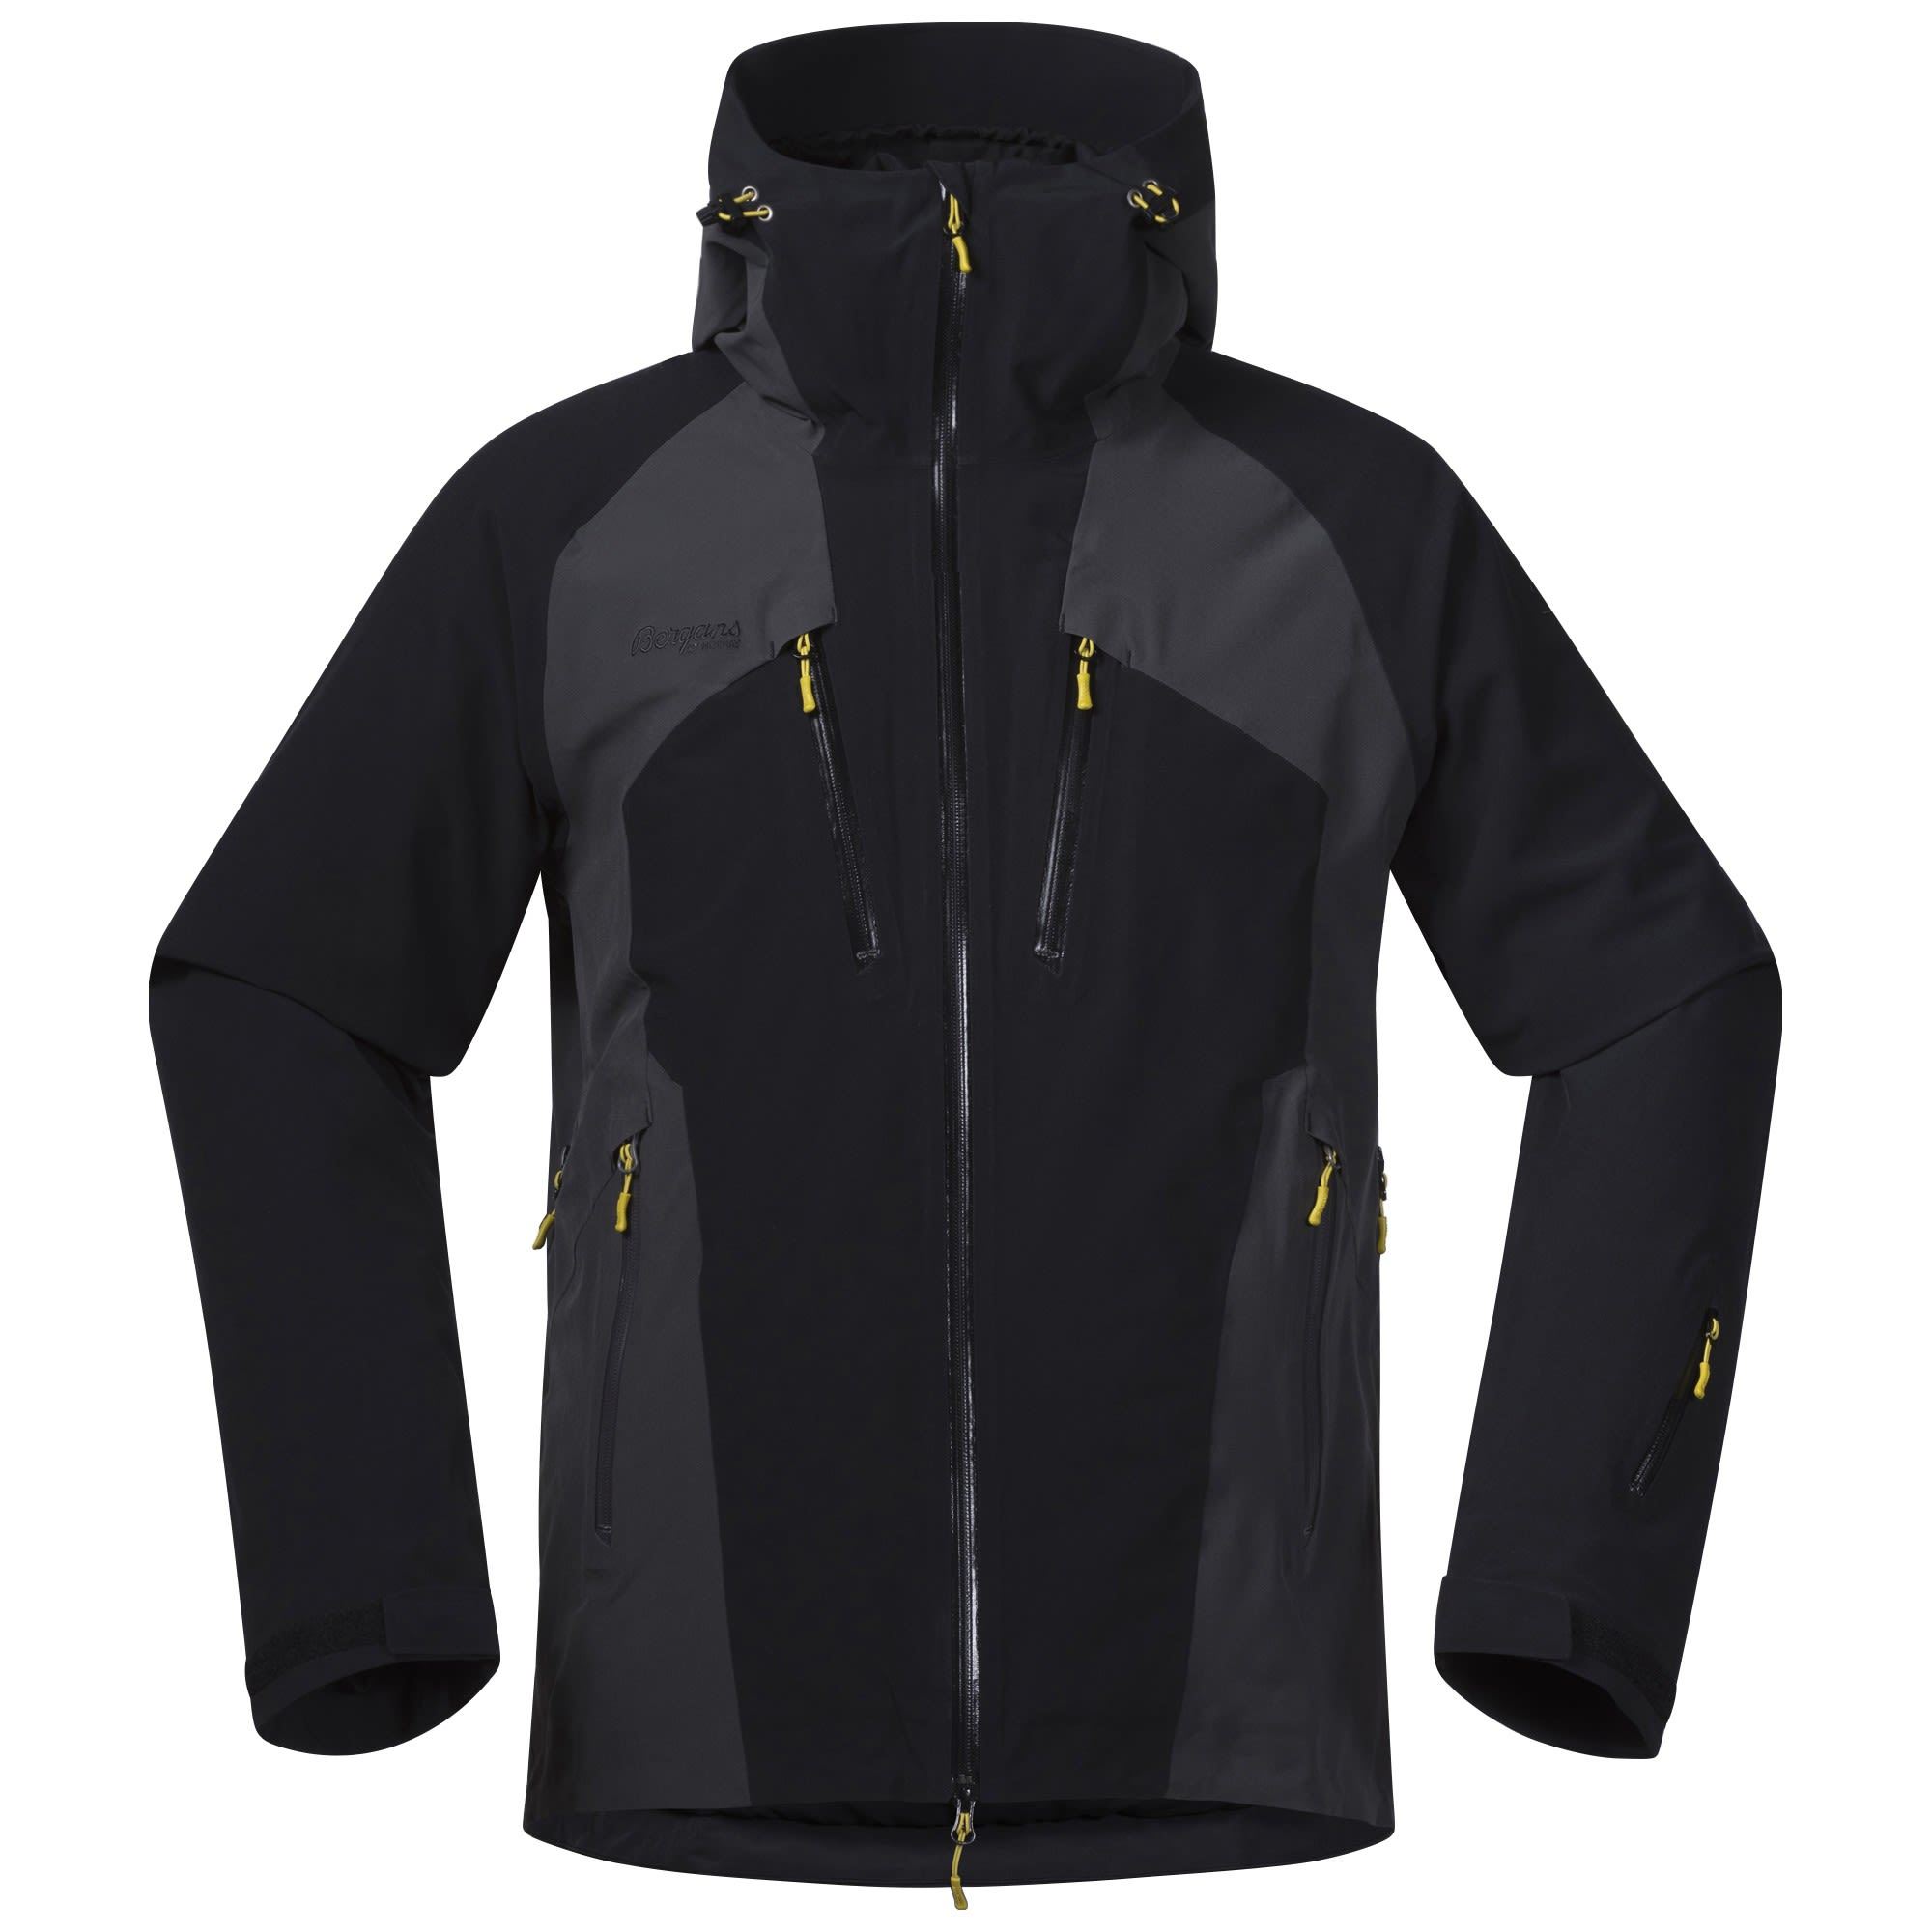 Bergans Oppdal Jacket Colorblock, Male XL -Farbe Black -Solid Charcoal, XL